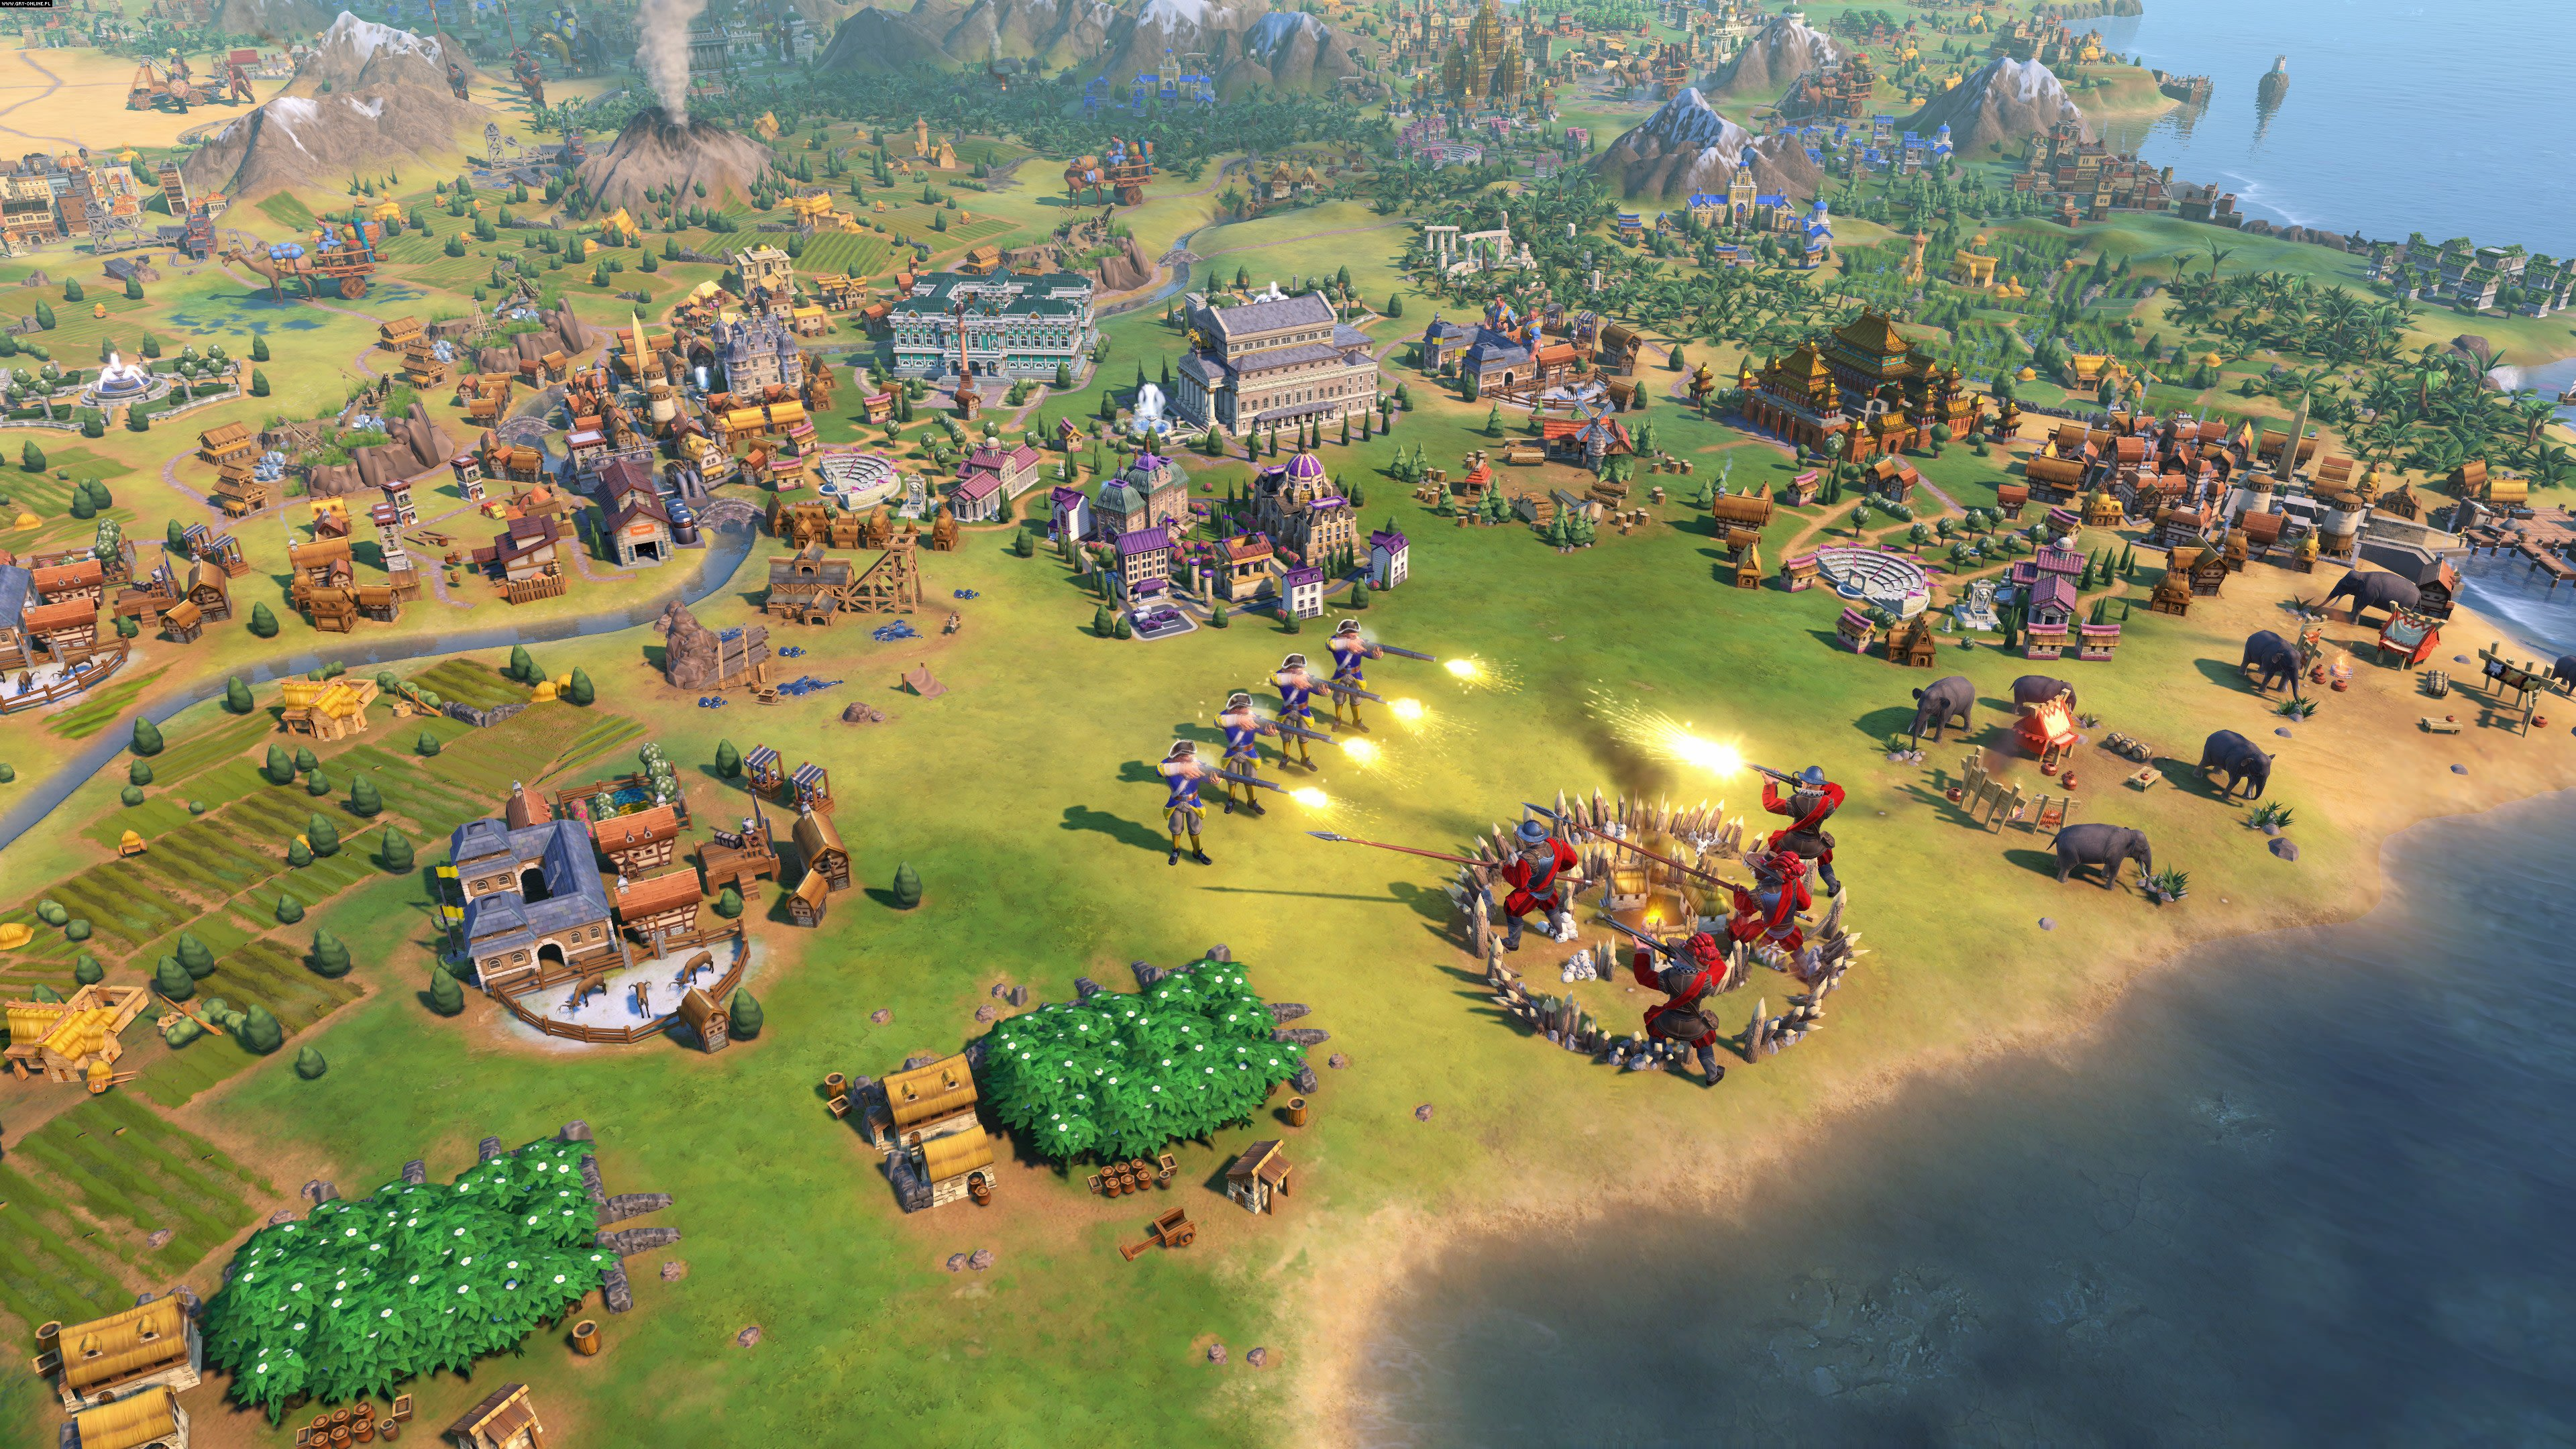 Sid Meier's Civilization VI: Gathering Storm PC Games Image 3/20, Firaxis Games, 2K Games